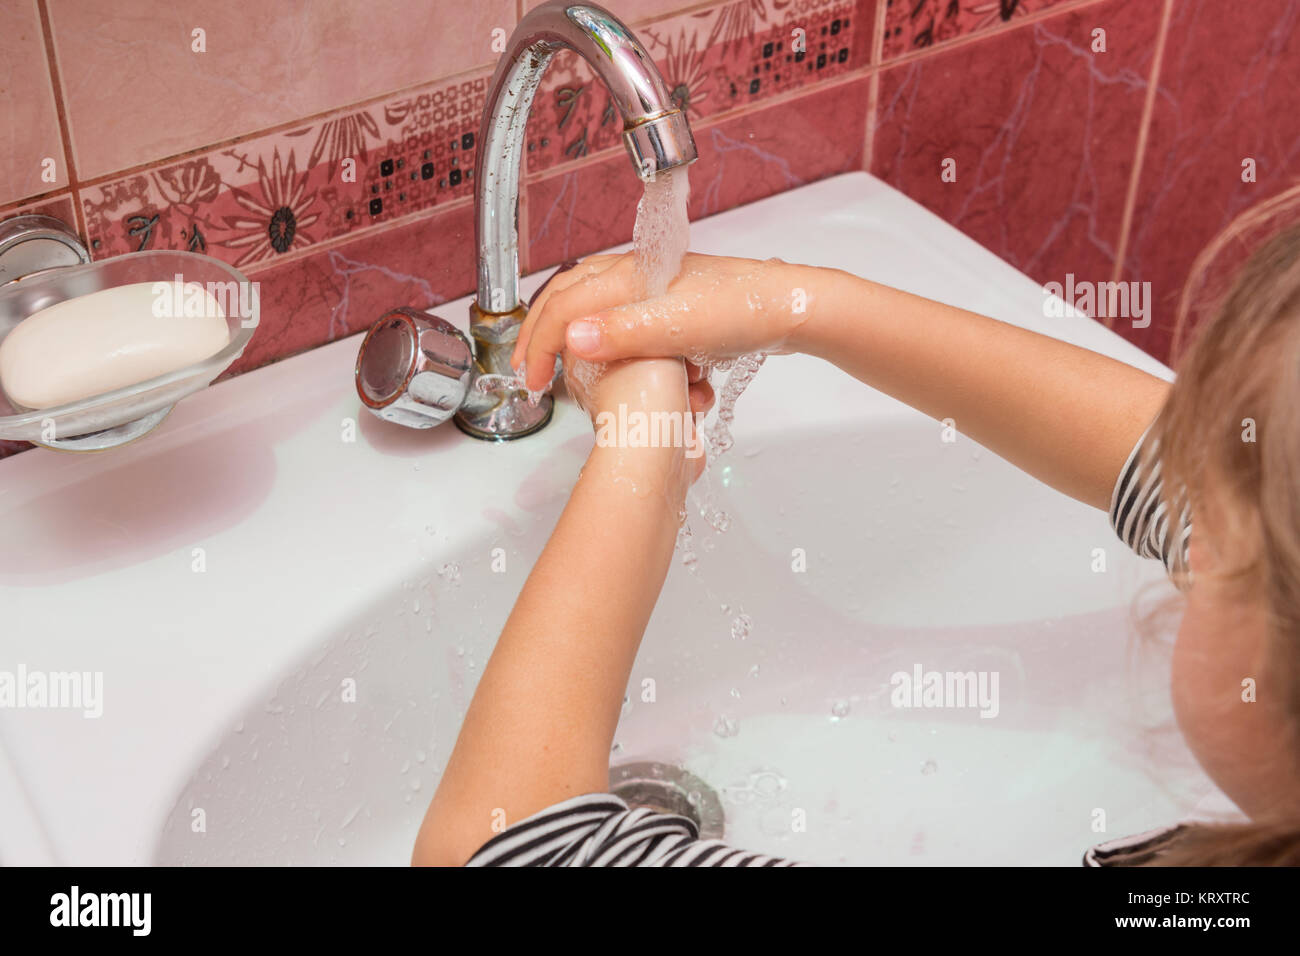 Five-year girl washes hands with soap - Stock Image